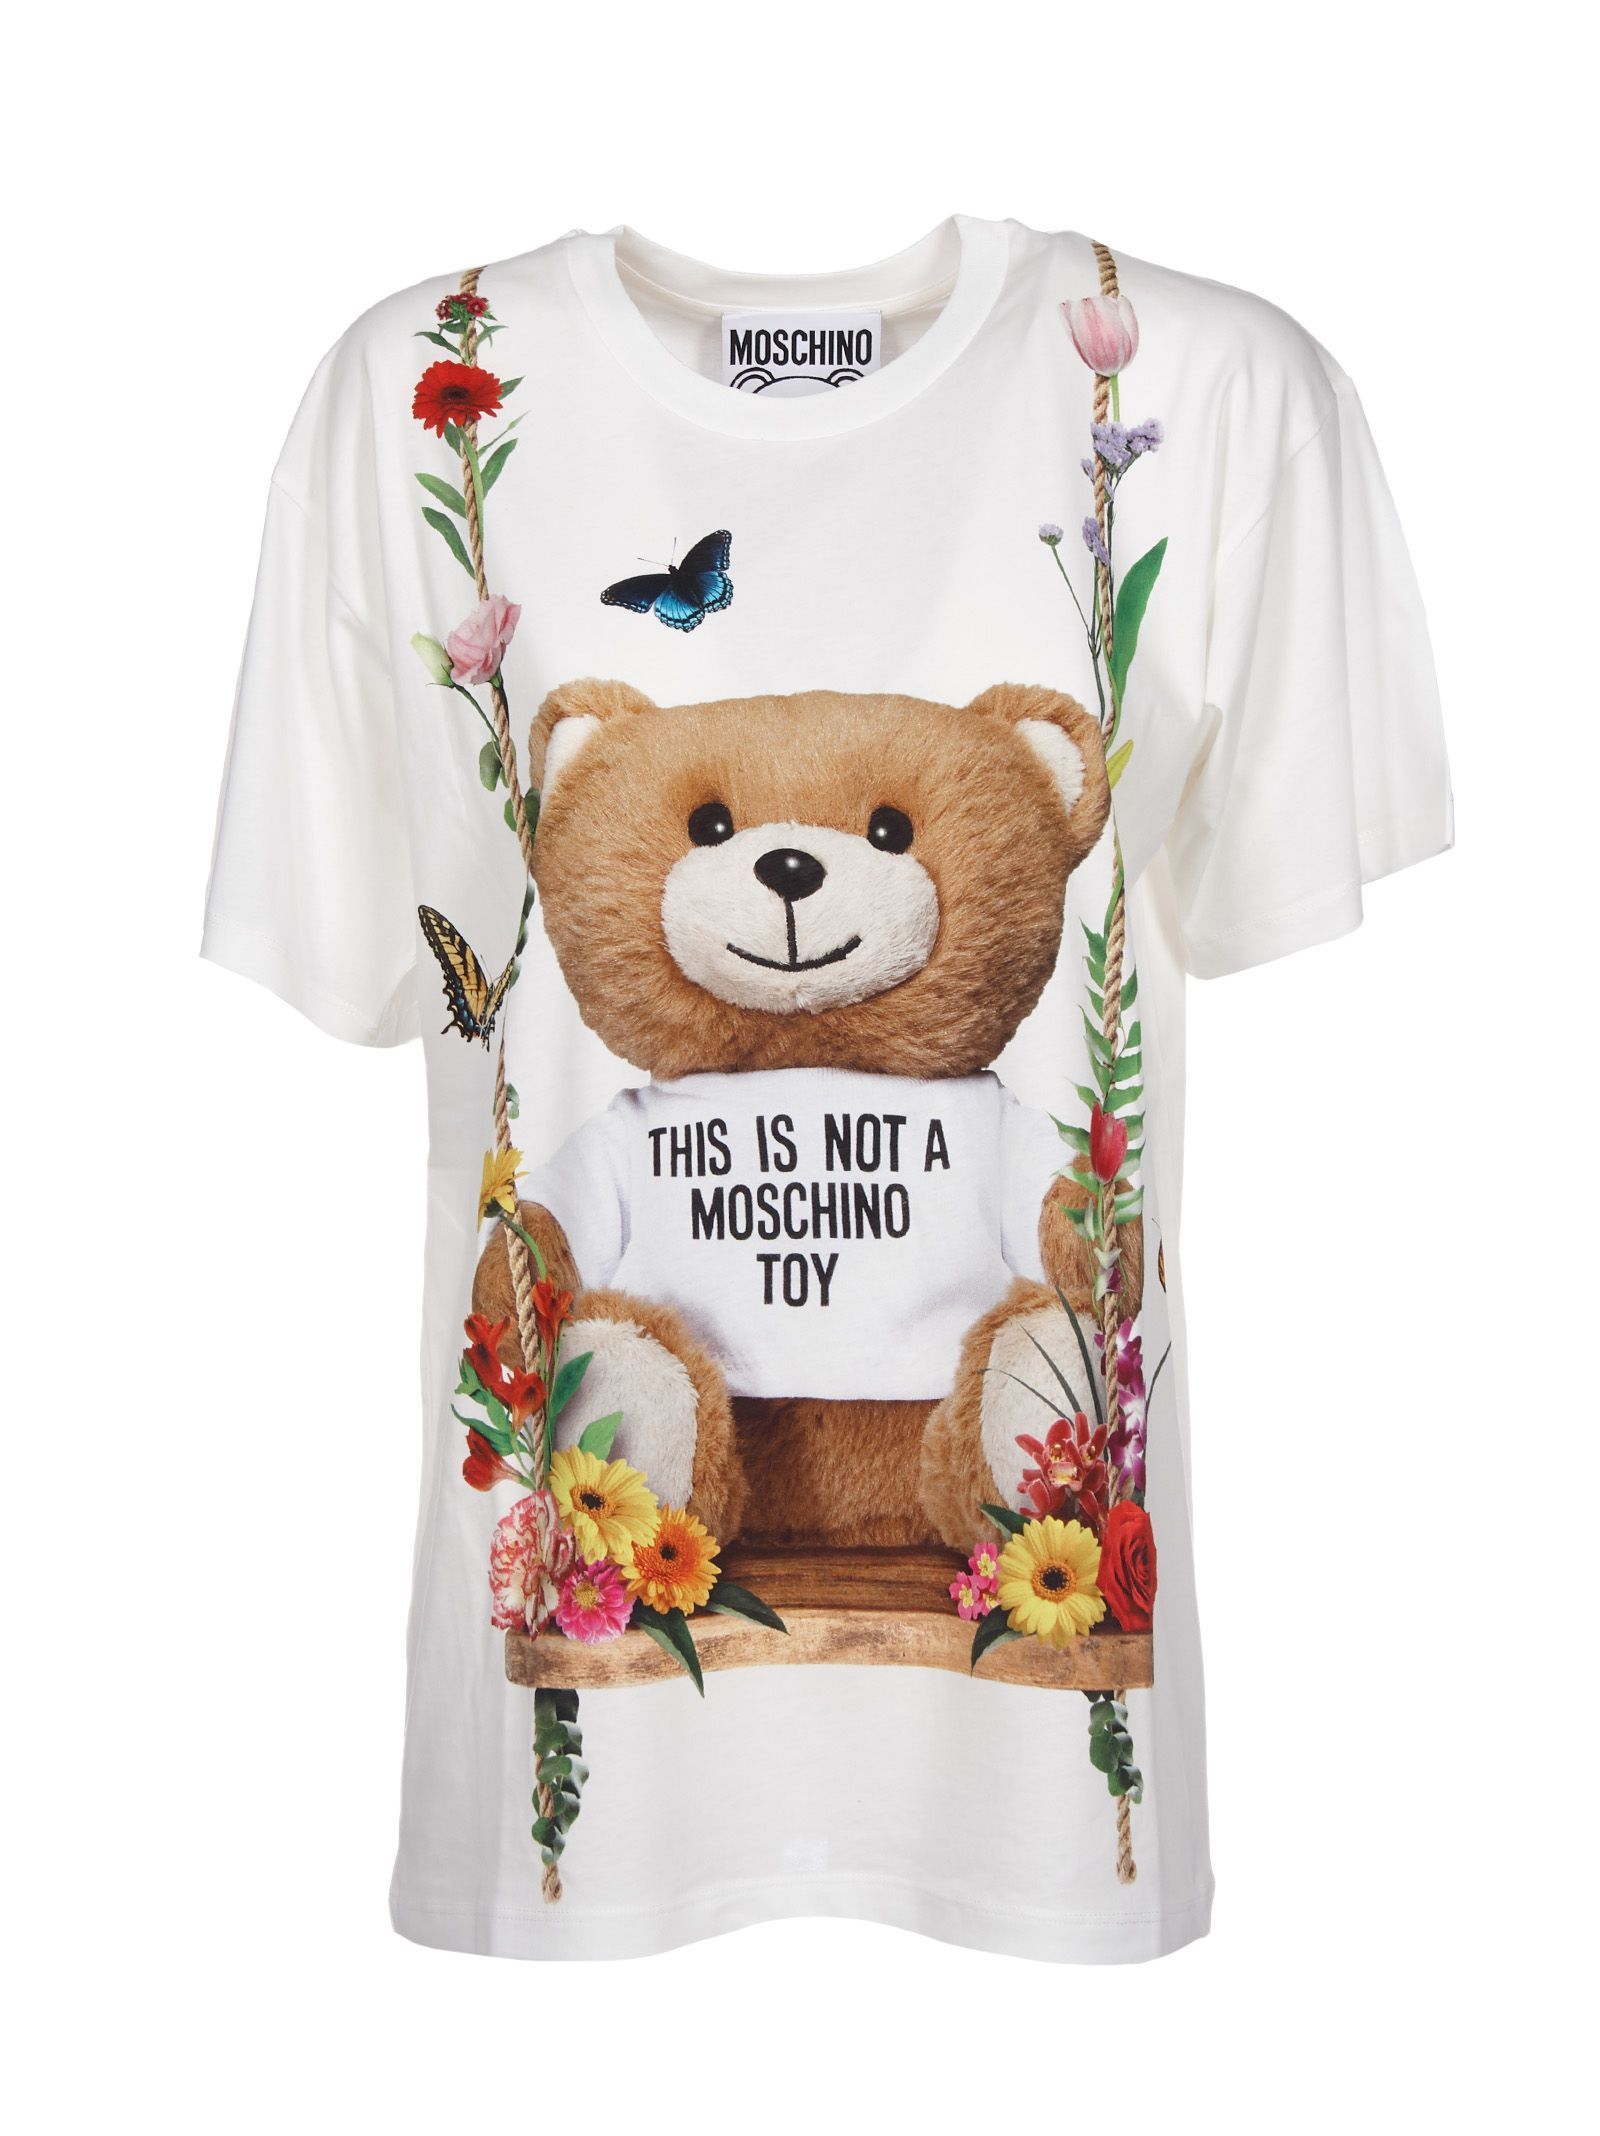 cc9b918bc0 MOSCHINO FLORAL TEDDY BEAR T-SHIRT.  moschino  cloth